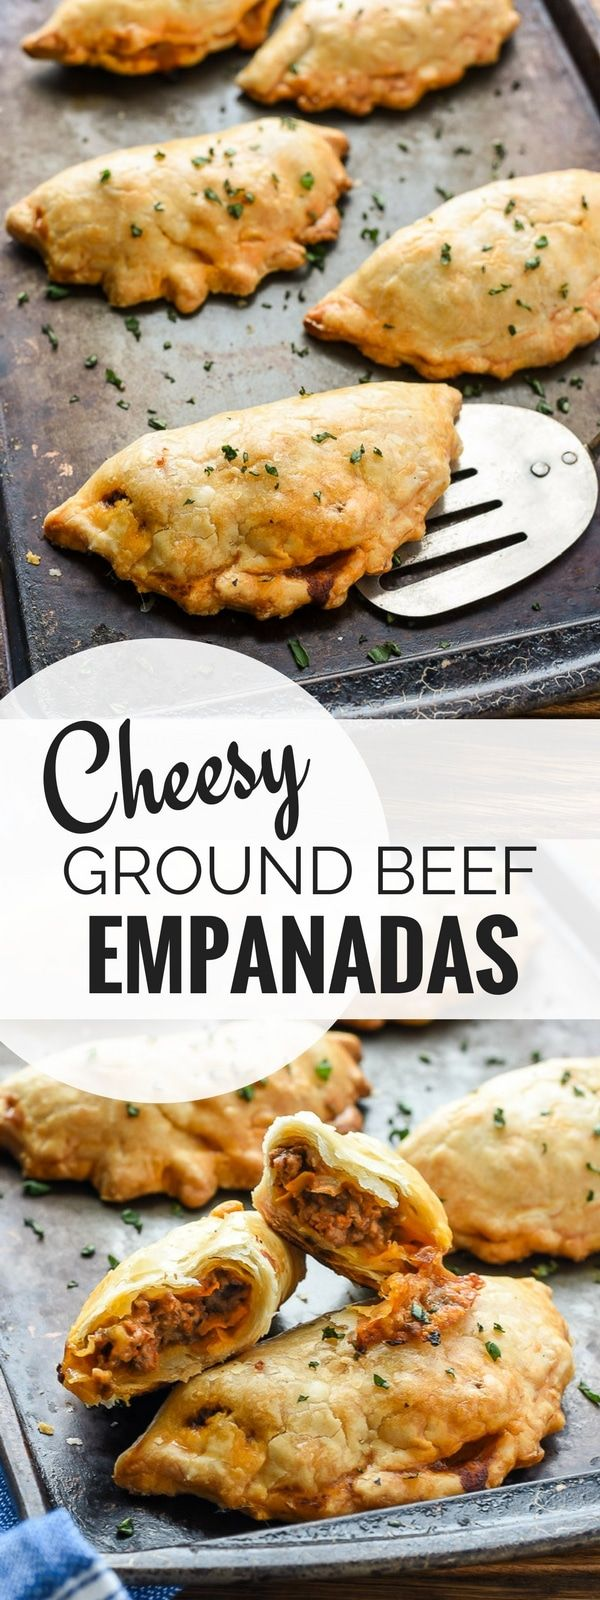 Cheesy Ground Beef Empanadas are a fun, easy, and filling meal that's great for dinner or for packing in school lunches!